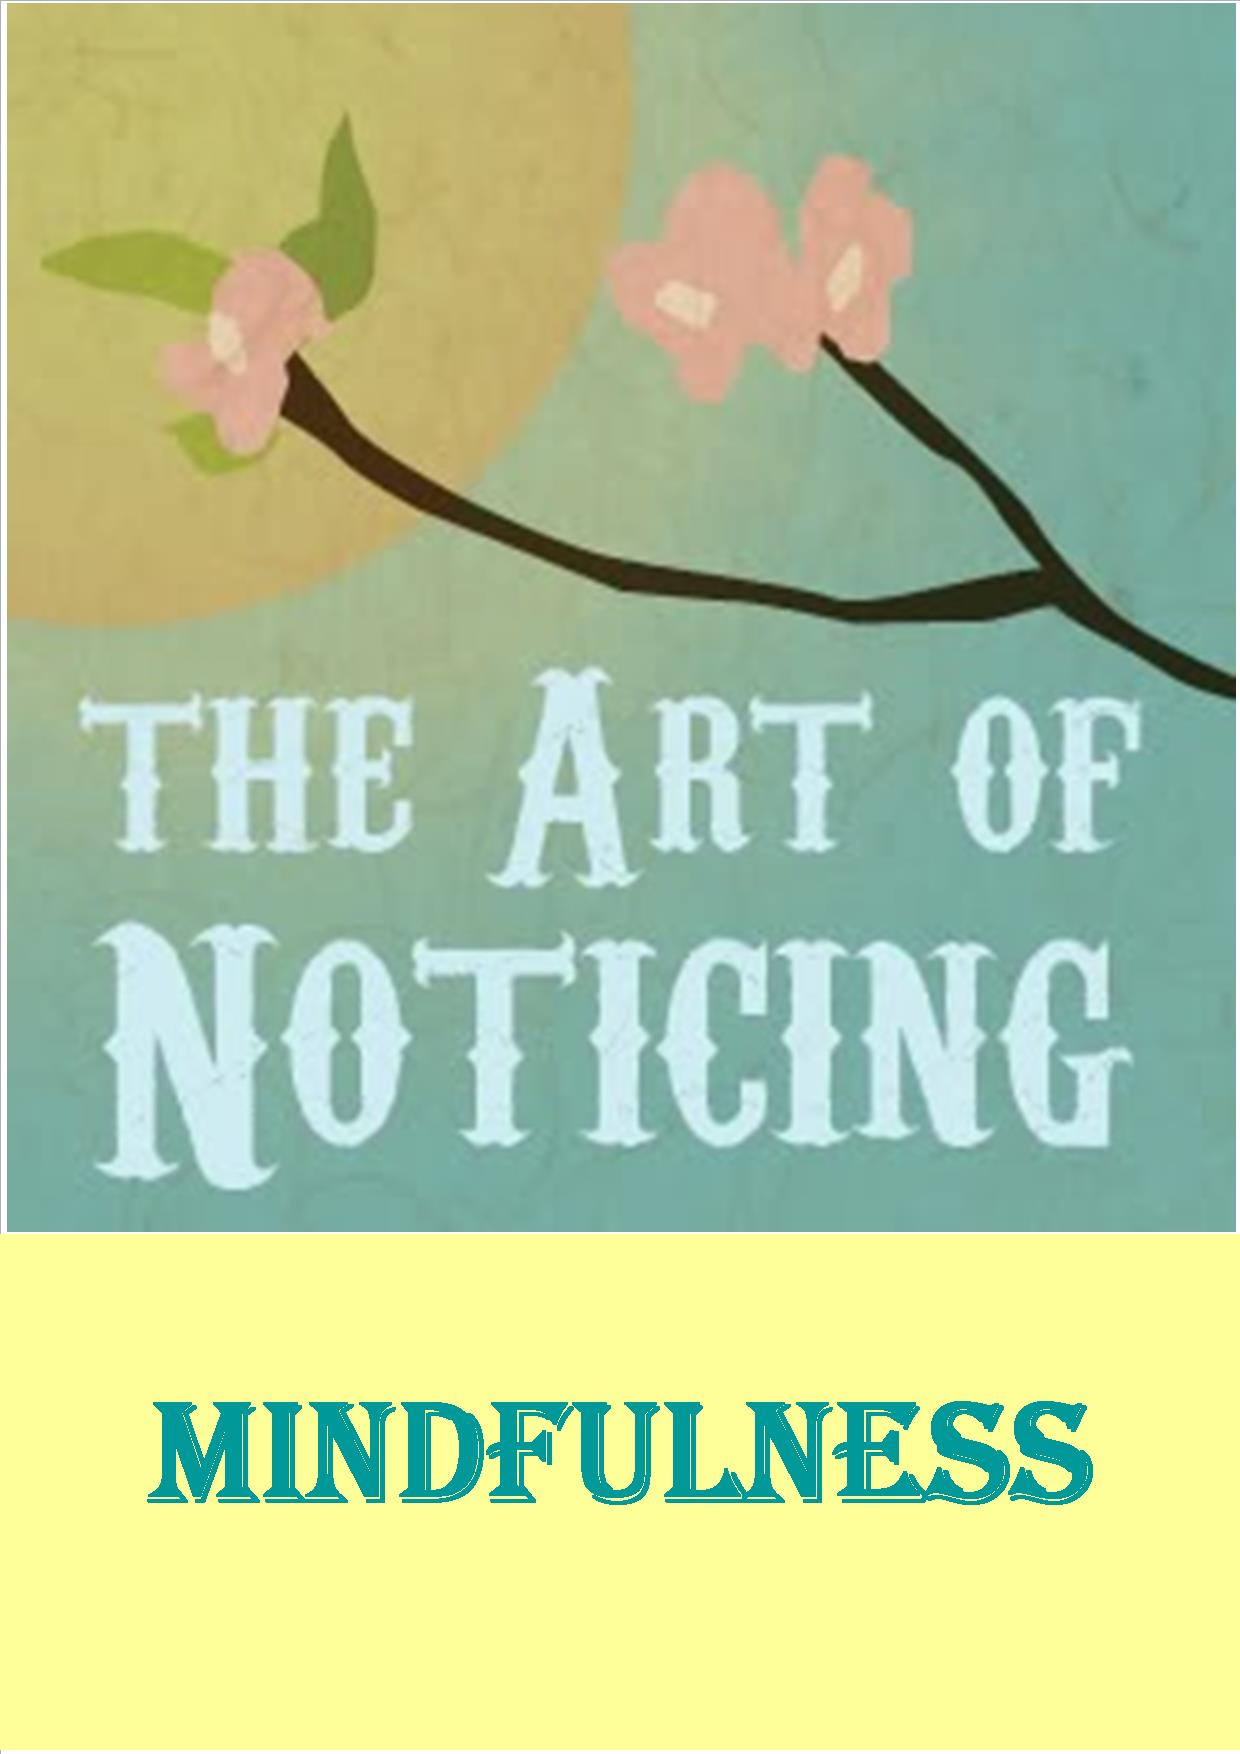 New Mindfulness Course Starting January 2016 The